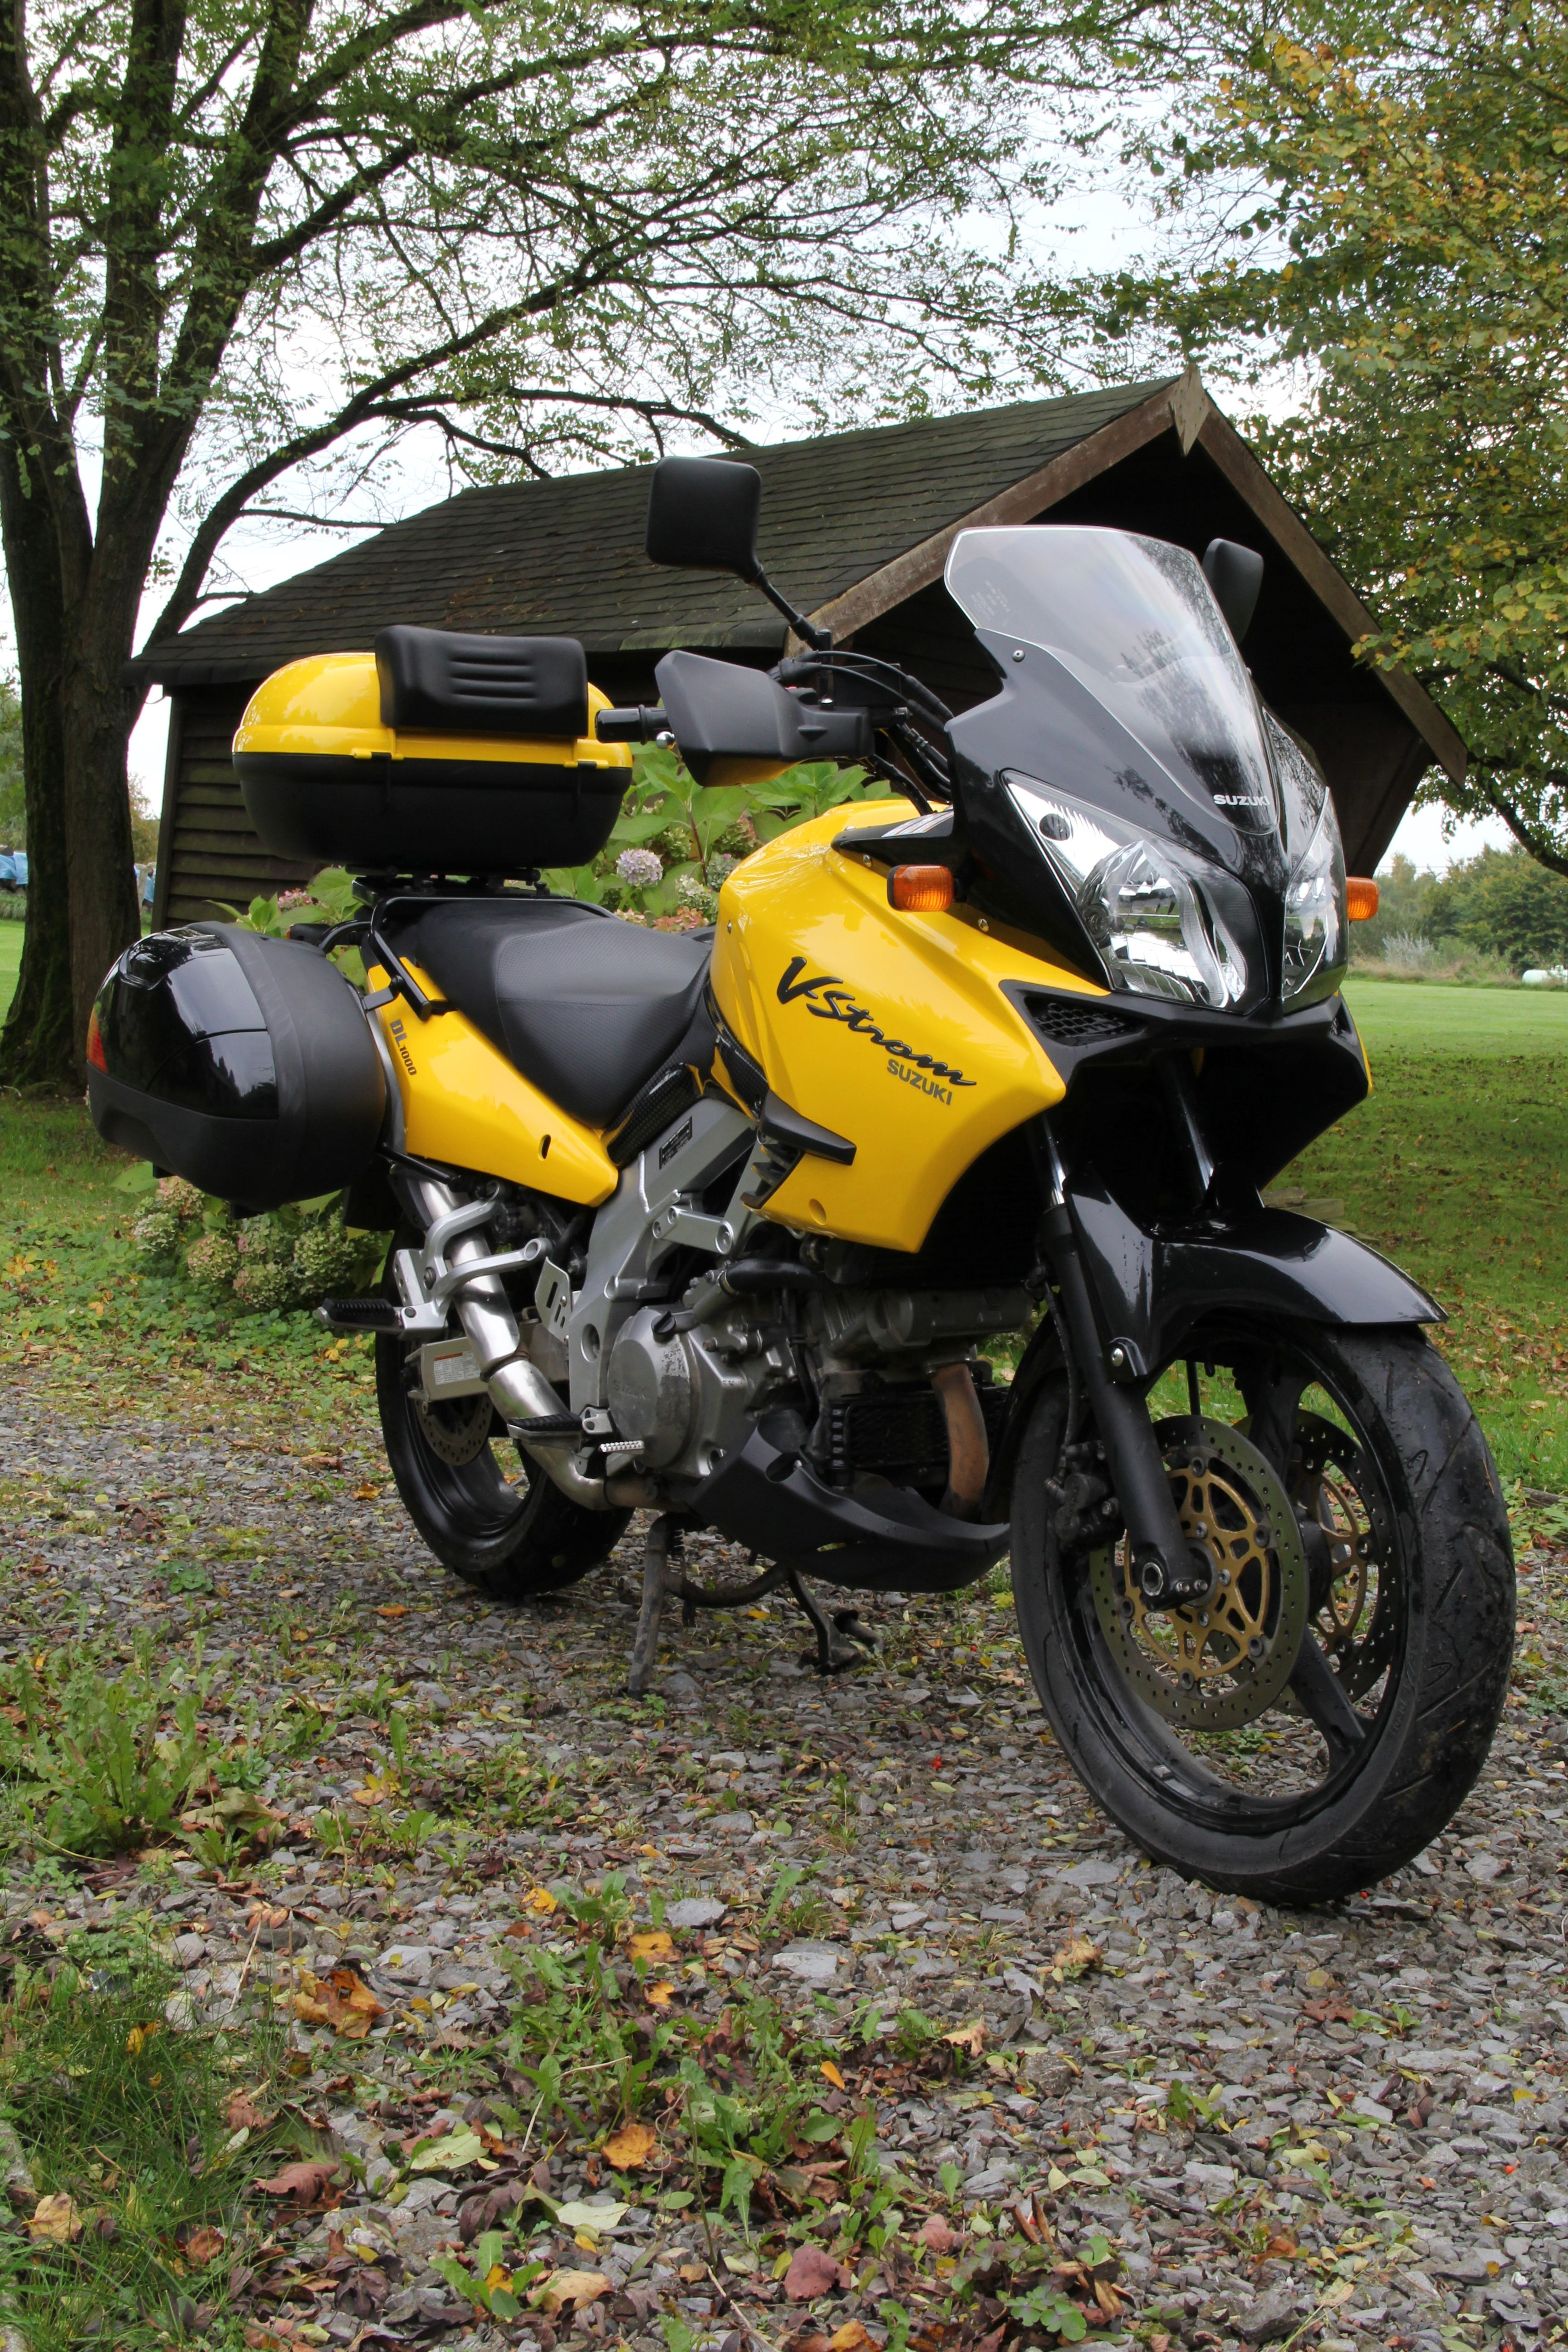 suzuki dl 1000 v strom black and yellow my kind of. Black Bedroom Furniture Sets. Home Design Ideas